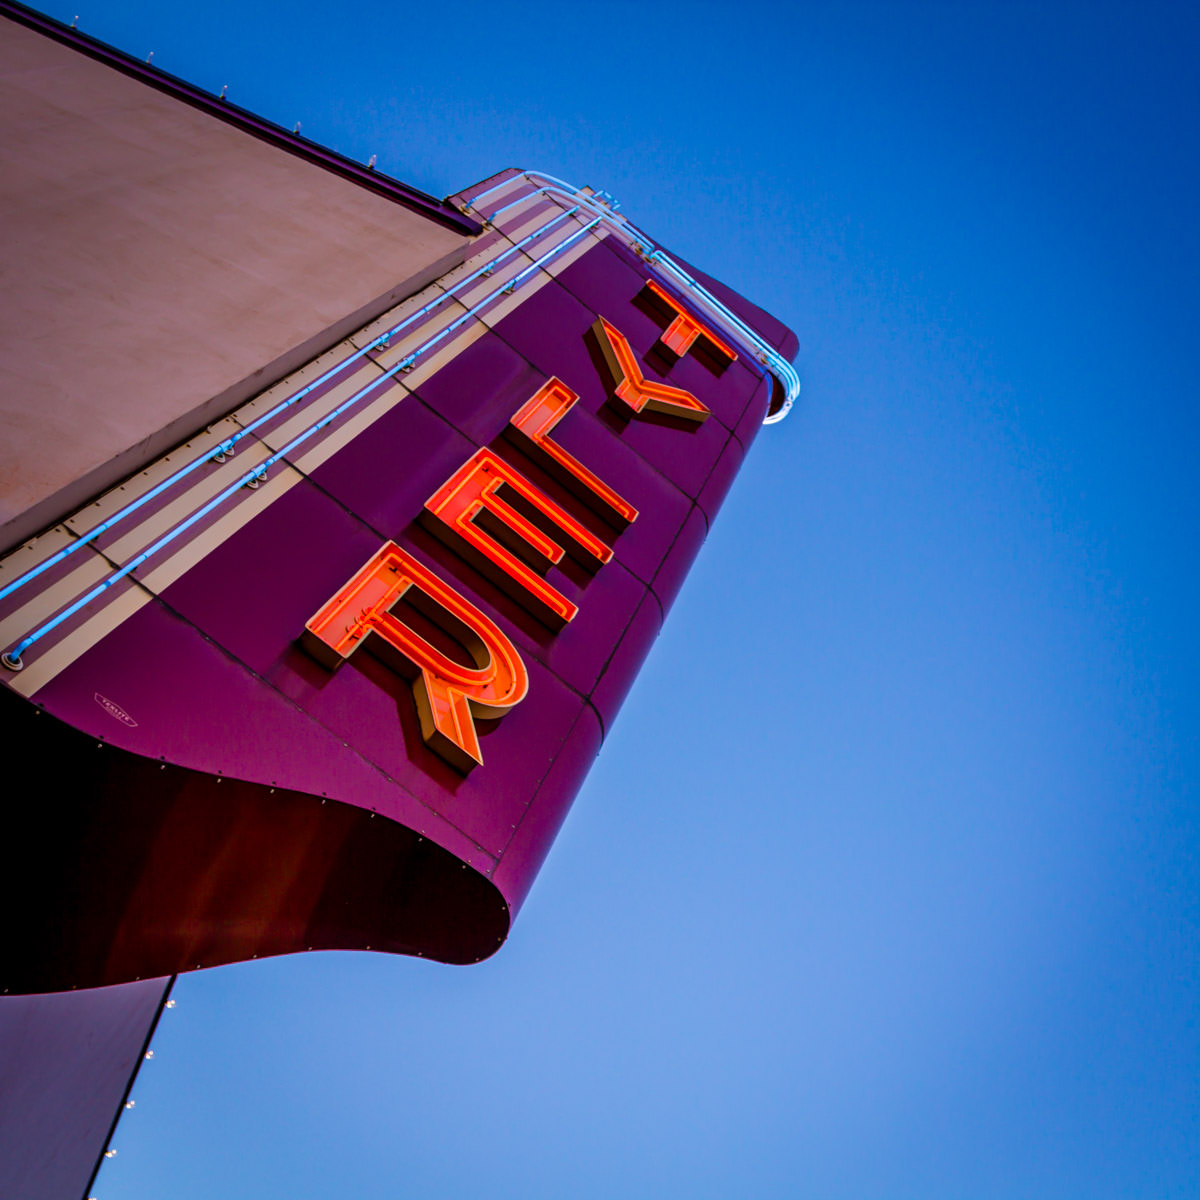 The newly-repaired sign of the long-closed Tyler Theater in Downtown Tyler, Texas, reaches into the early-evening sky.